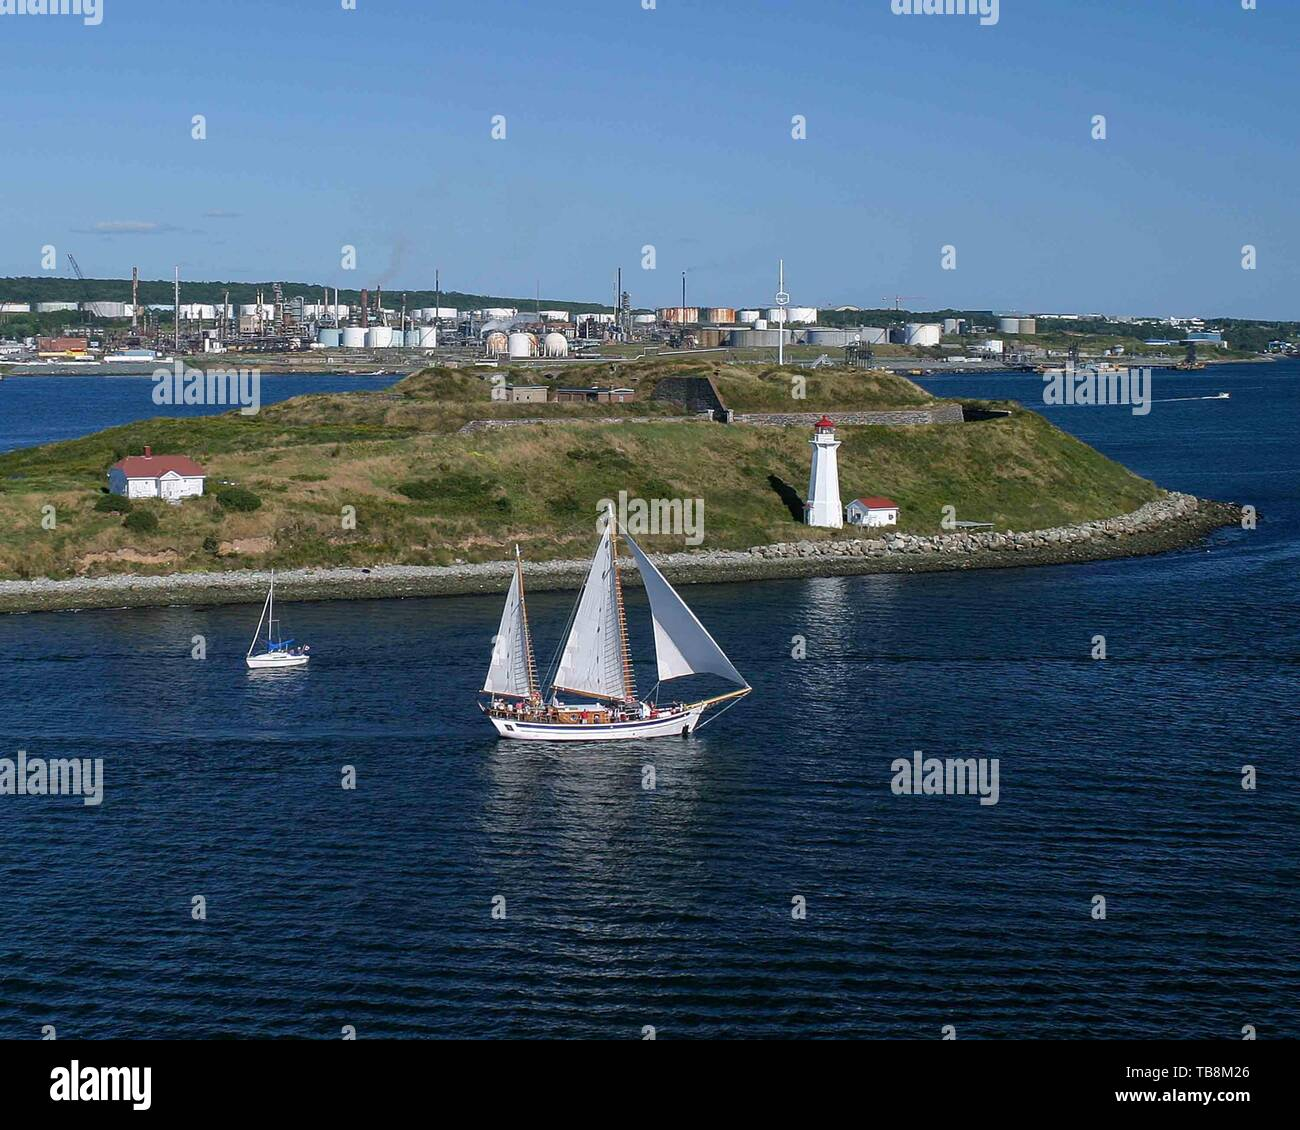 Halifax, Nova Scotia, Canada. 5th Sep, 2005. A schooner carrying visitors on a tour of Halifax harbor, Nova Scotia, passes St Georges Island and its lighthouse. Halifax and Nova Scotia are popular tourist destinations. Credit: Arnold Drapkin/ZUMA Wire/Alamy Live News - Stock Image